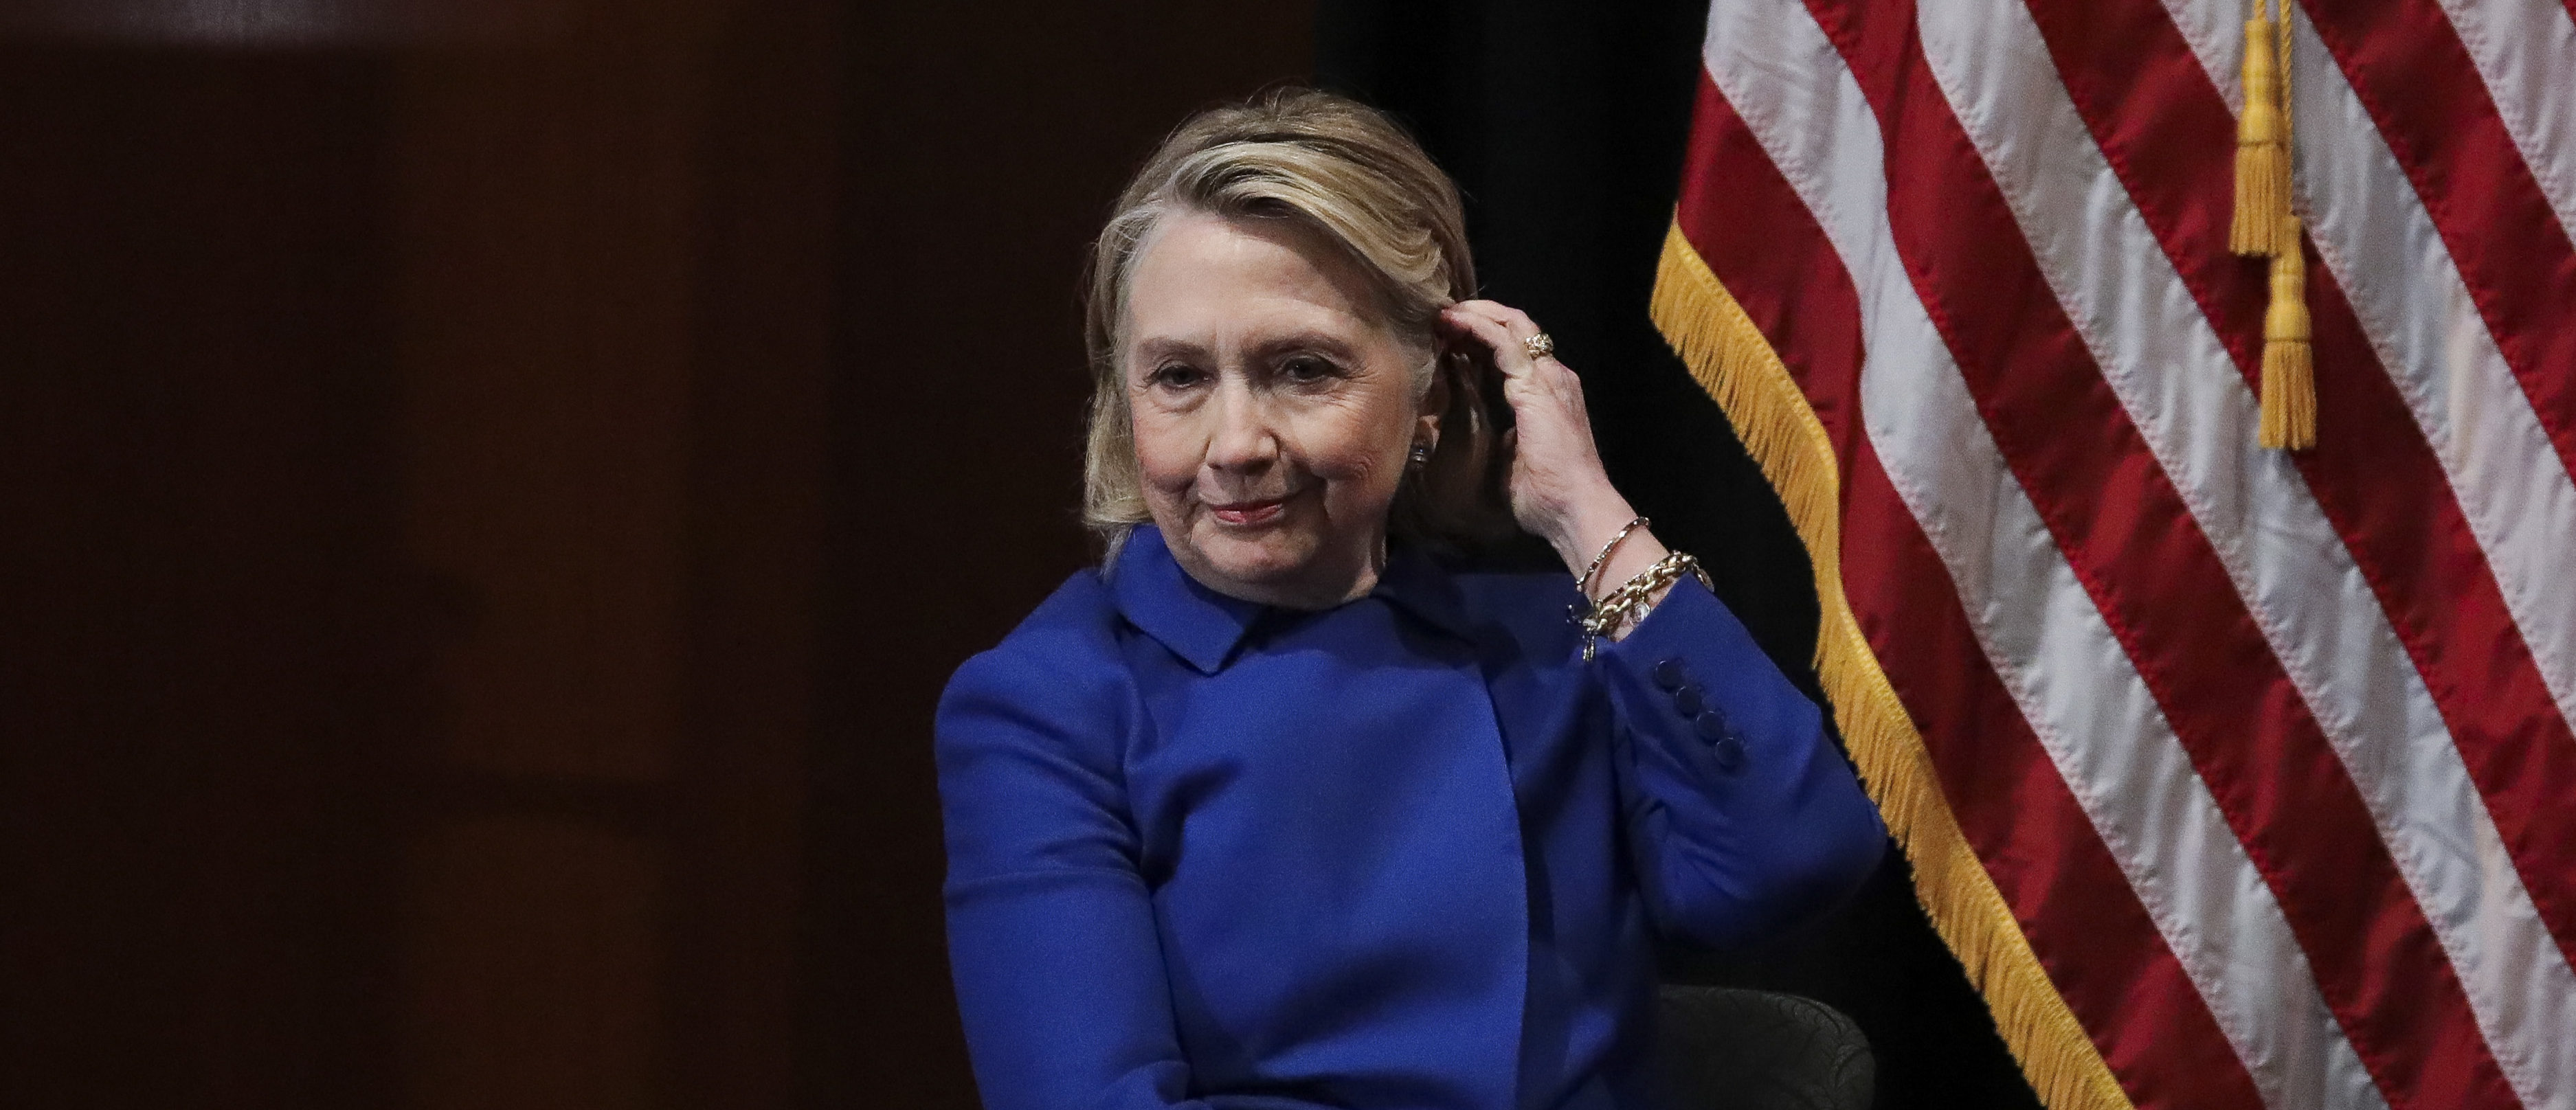 Former Secretary of State Hillary Clinton looks on during an event to discuss reproductive rights at Barnard College, January 7, 2019 in New York City. (Photo by Drew Angerer/Getty Images)